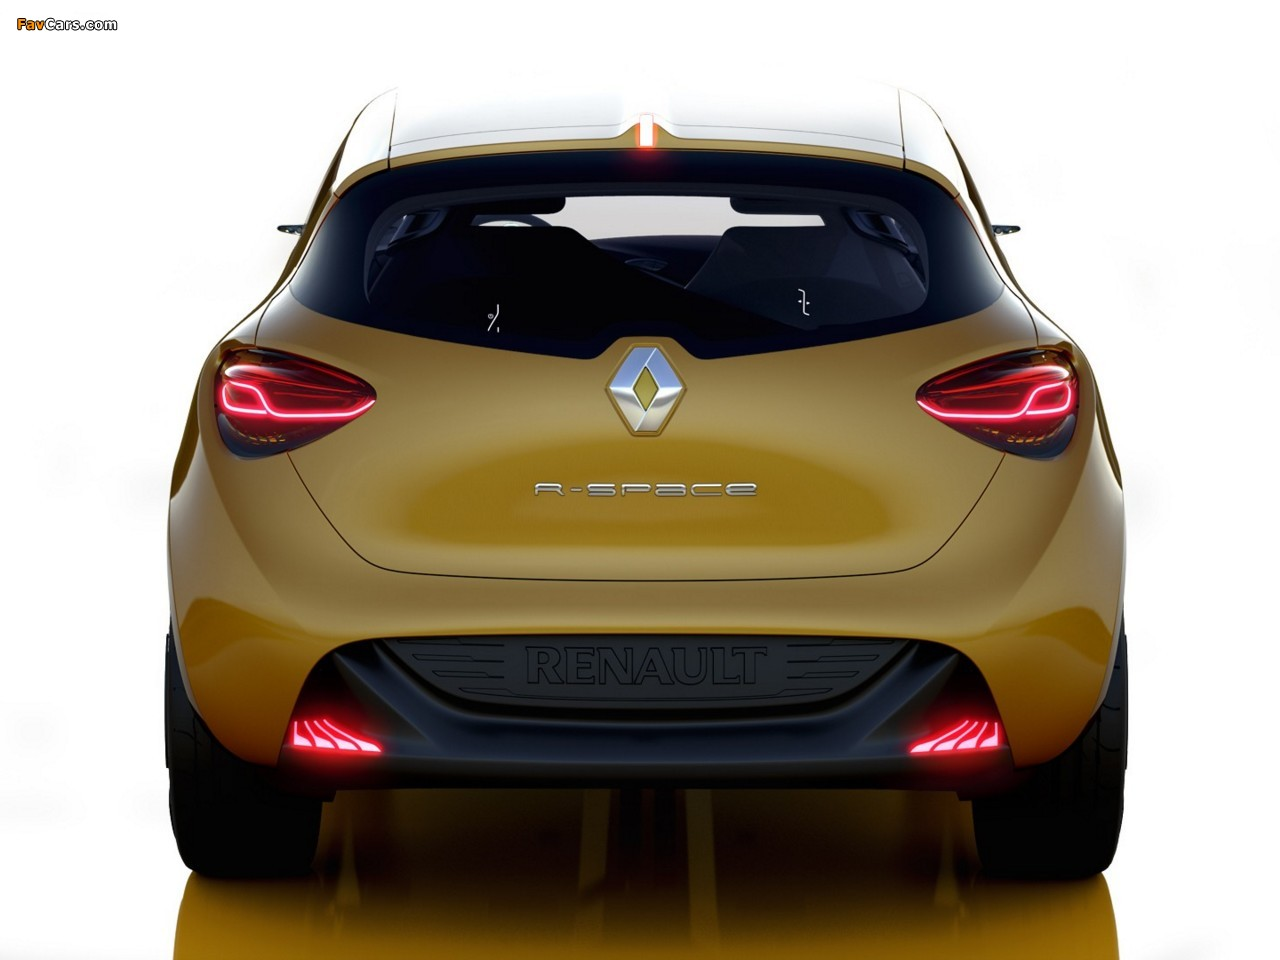 Renault R-Space Concept 2011 pictures (1280 x 960)